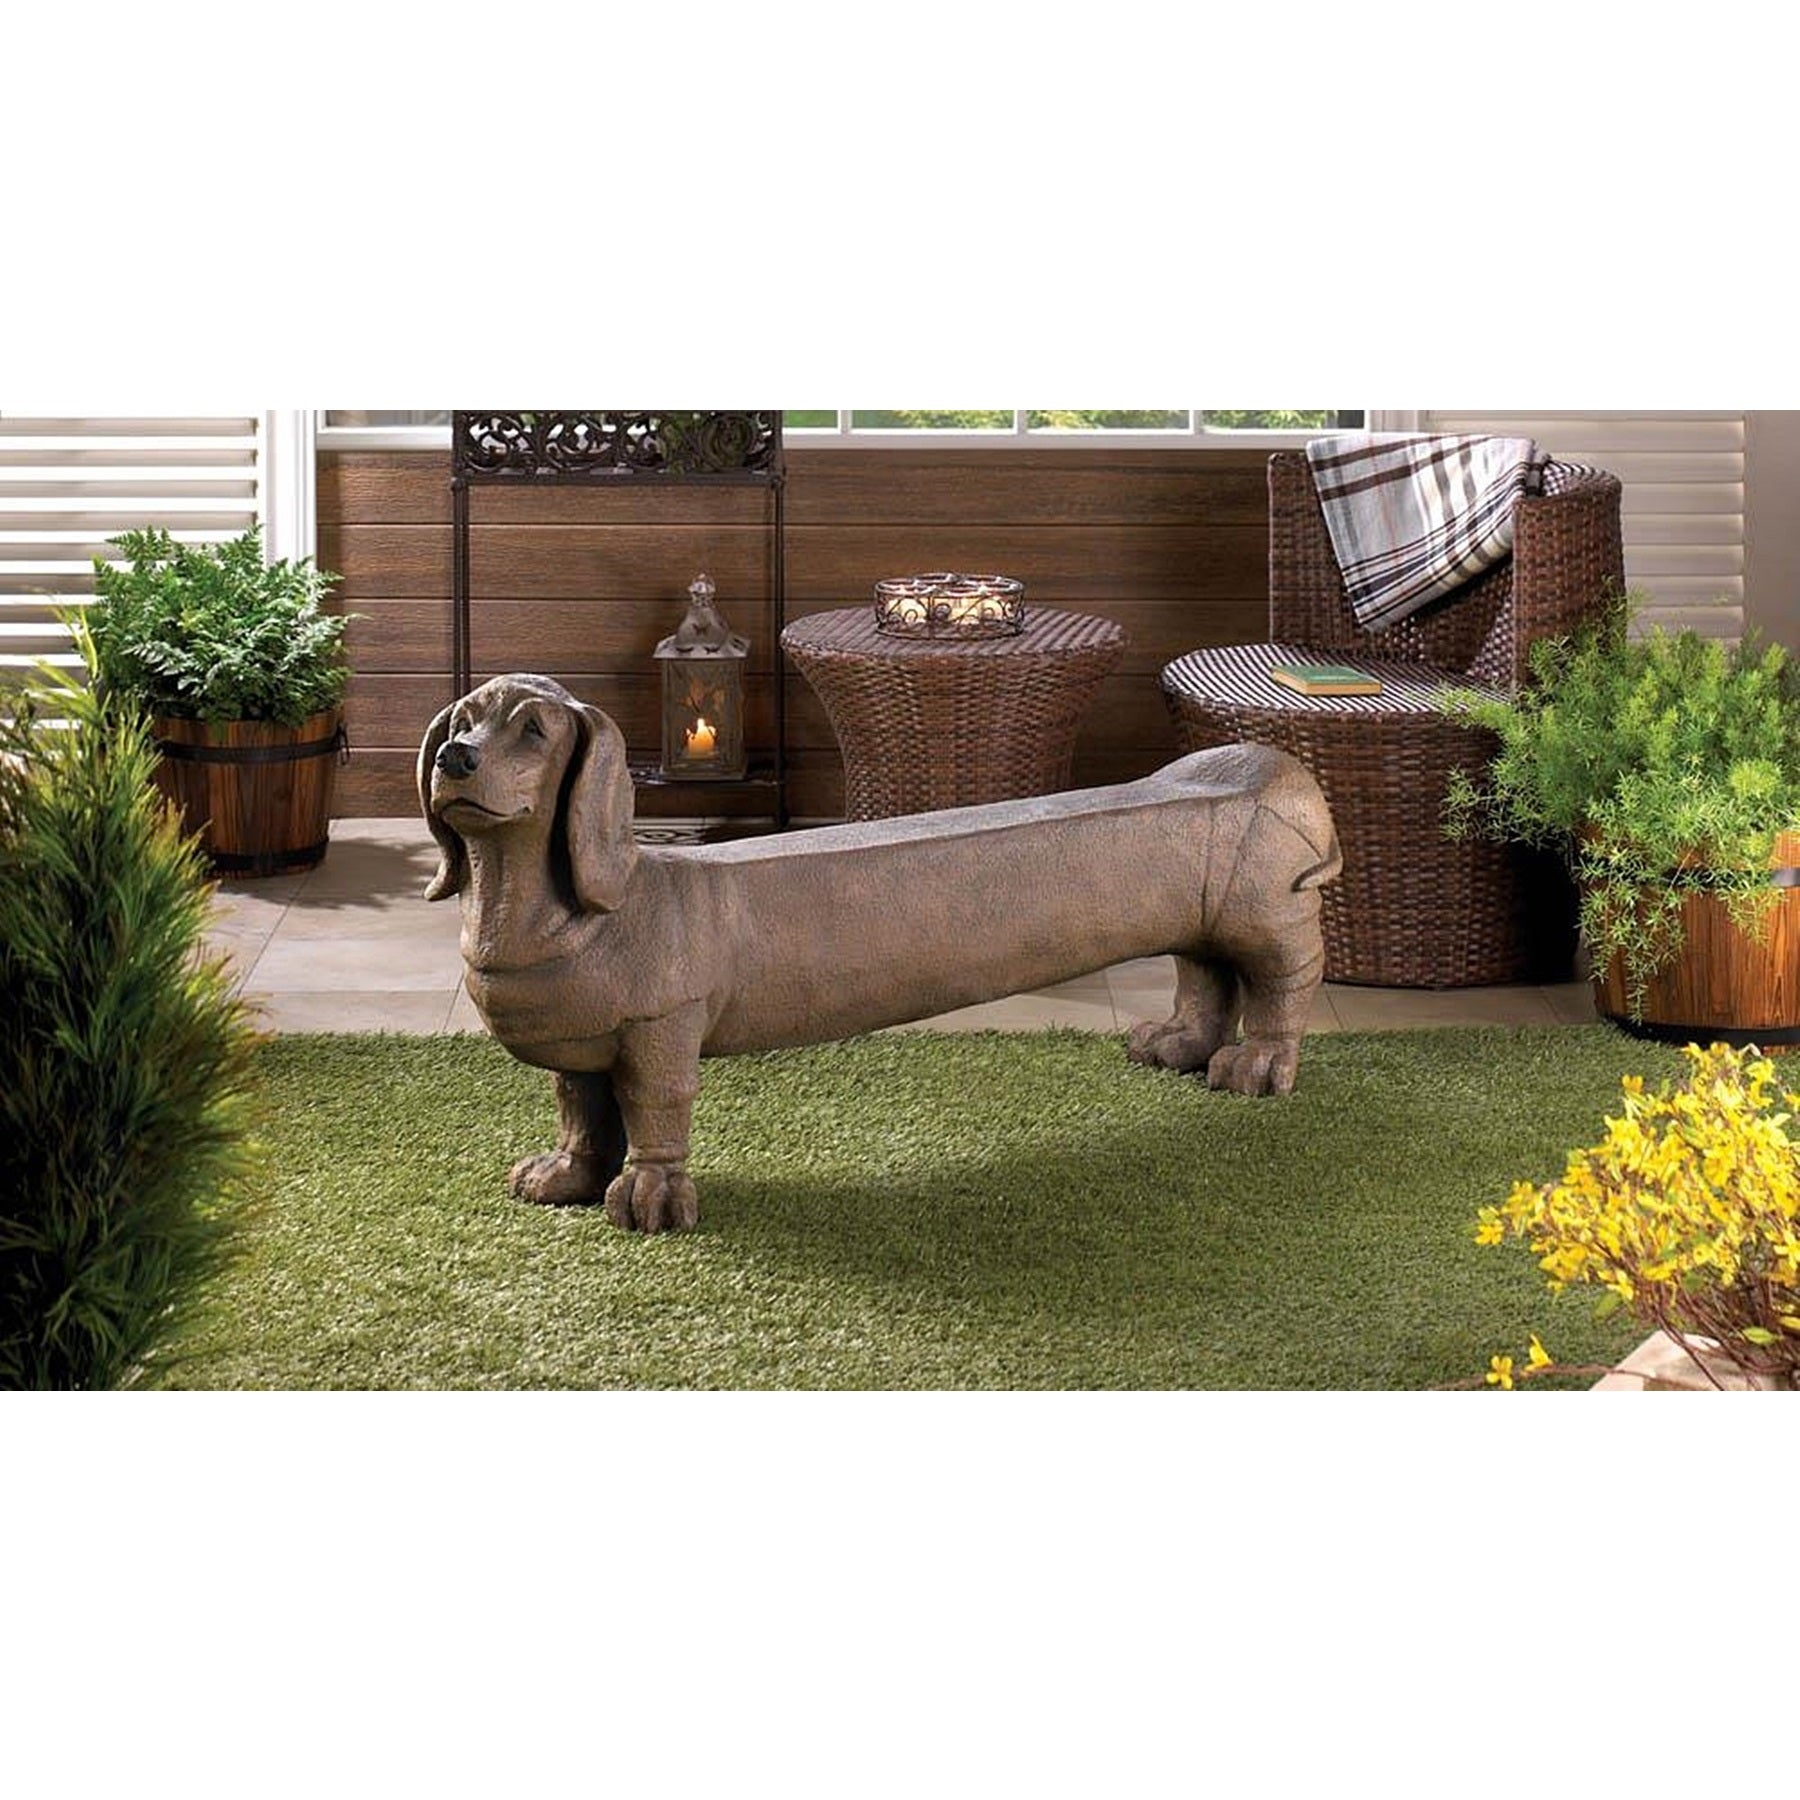 Charming Dog Indoor-Outdoor Bench, Brown, Patio Furniture...